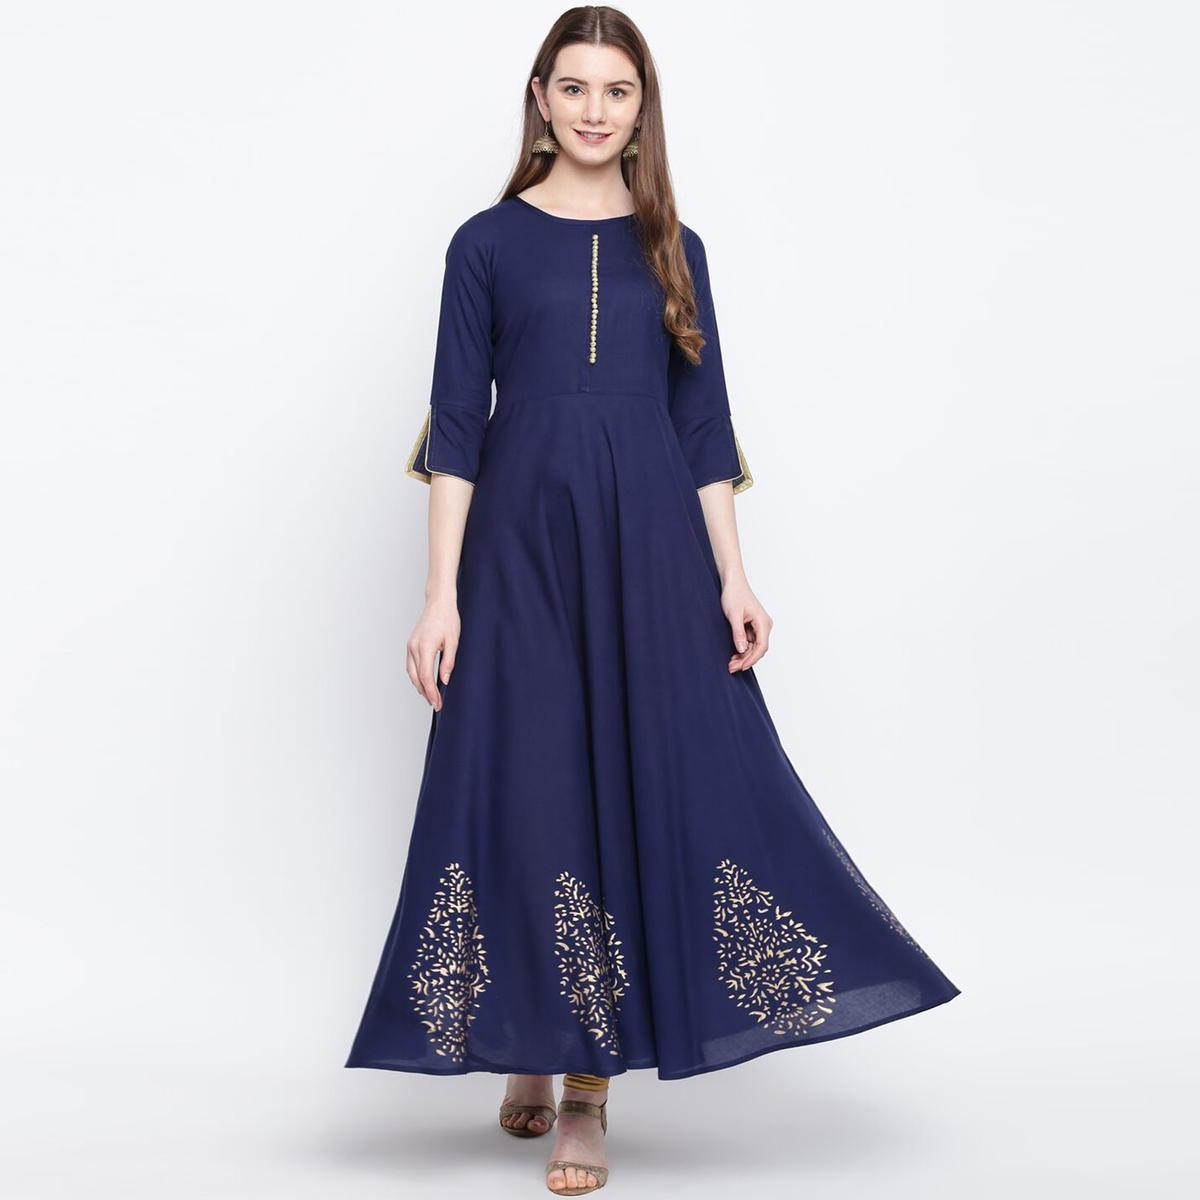 Intricate Navy Blue Colored Party Wear Printed Rayon Long Kurti